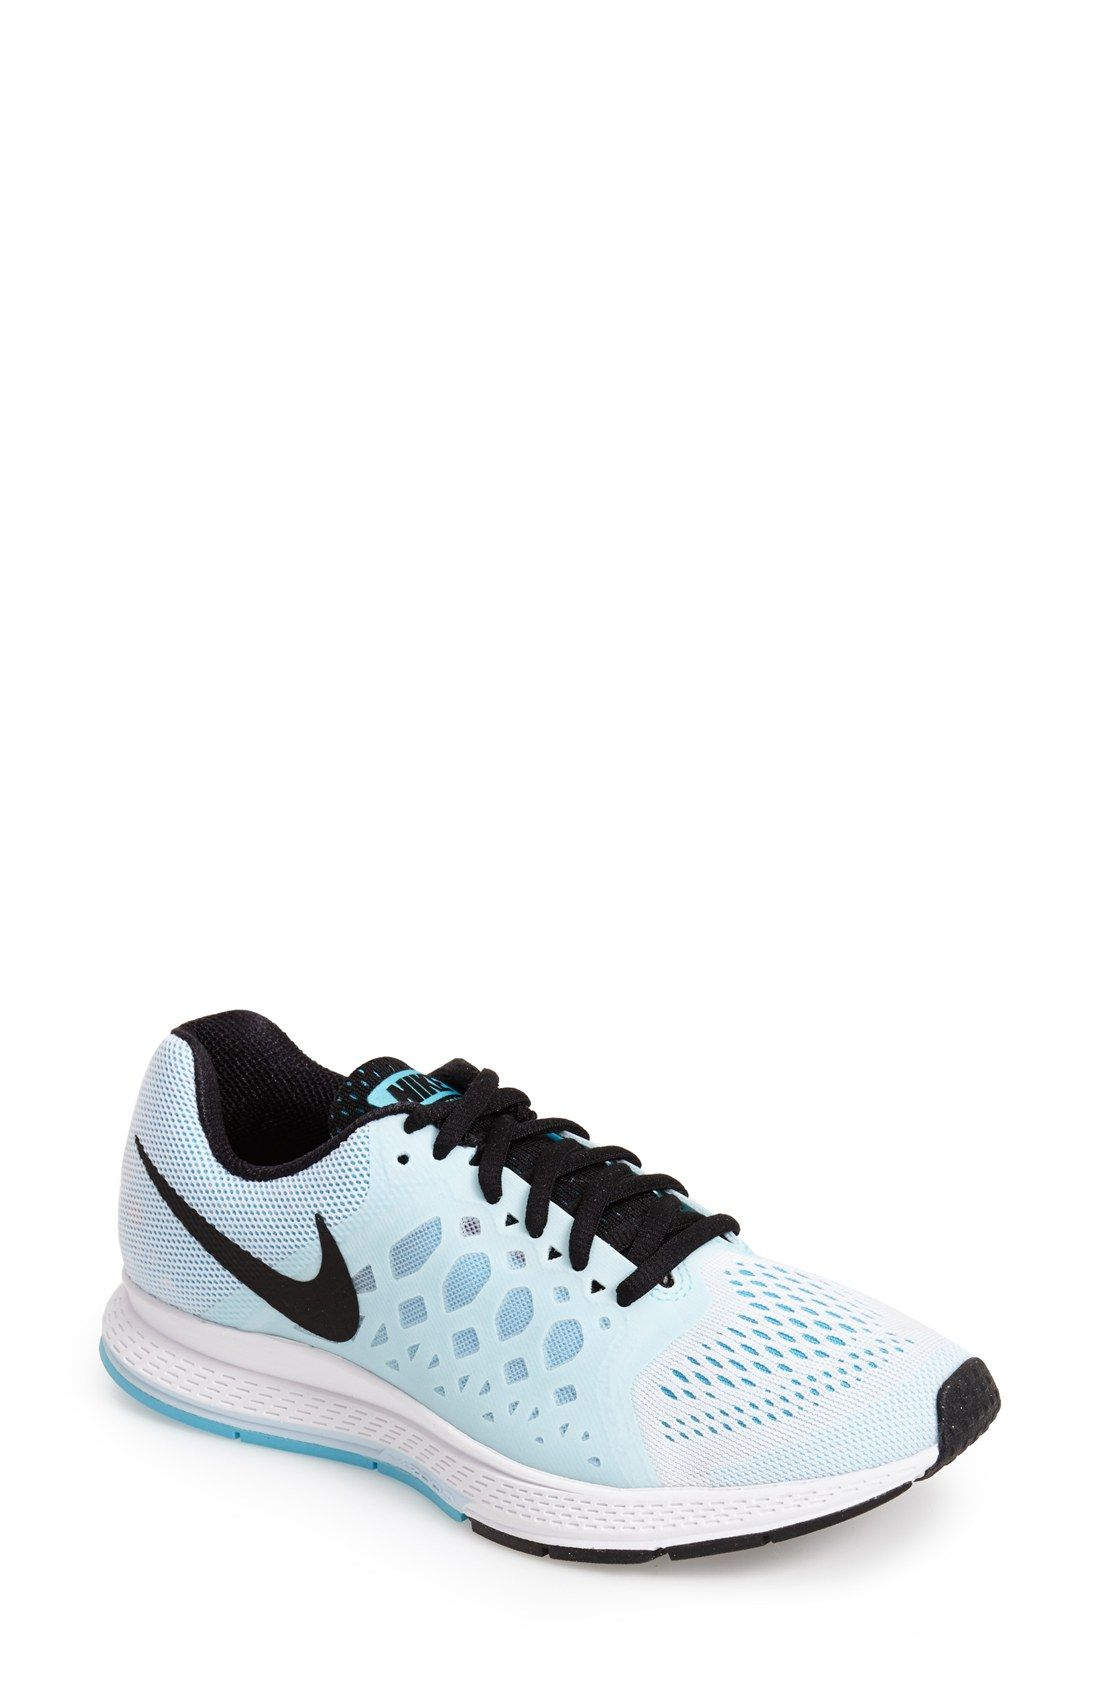 free shipping 7cfde a629e Can t wait to break these cute Nikes in on the next run.